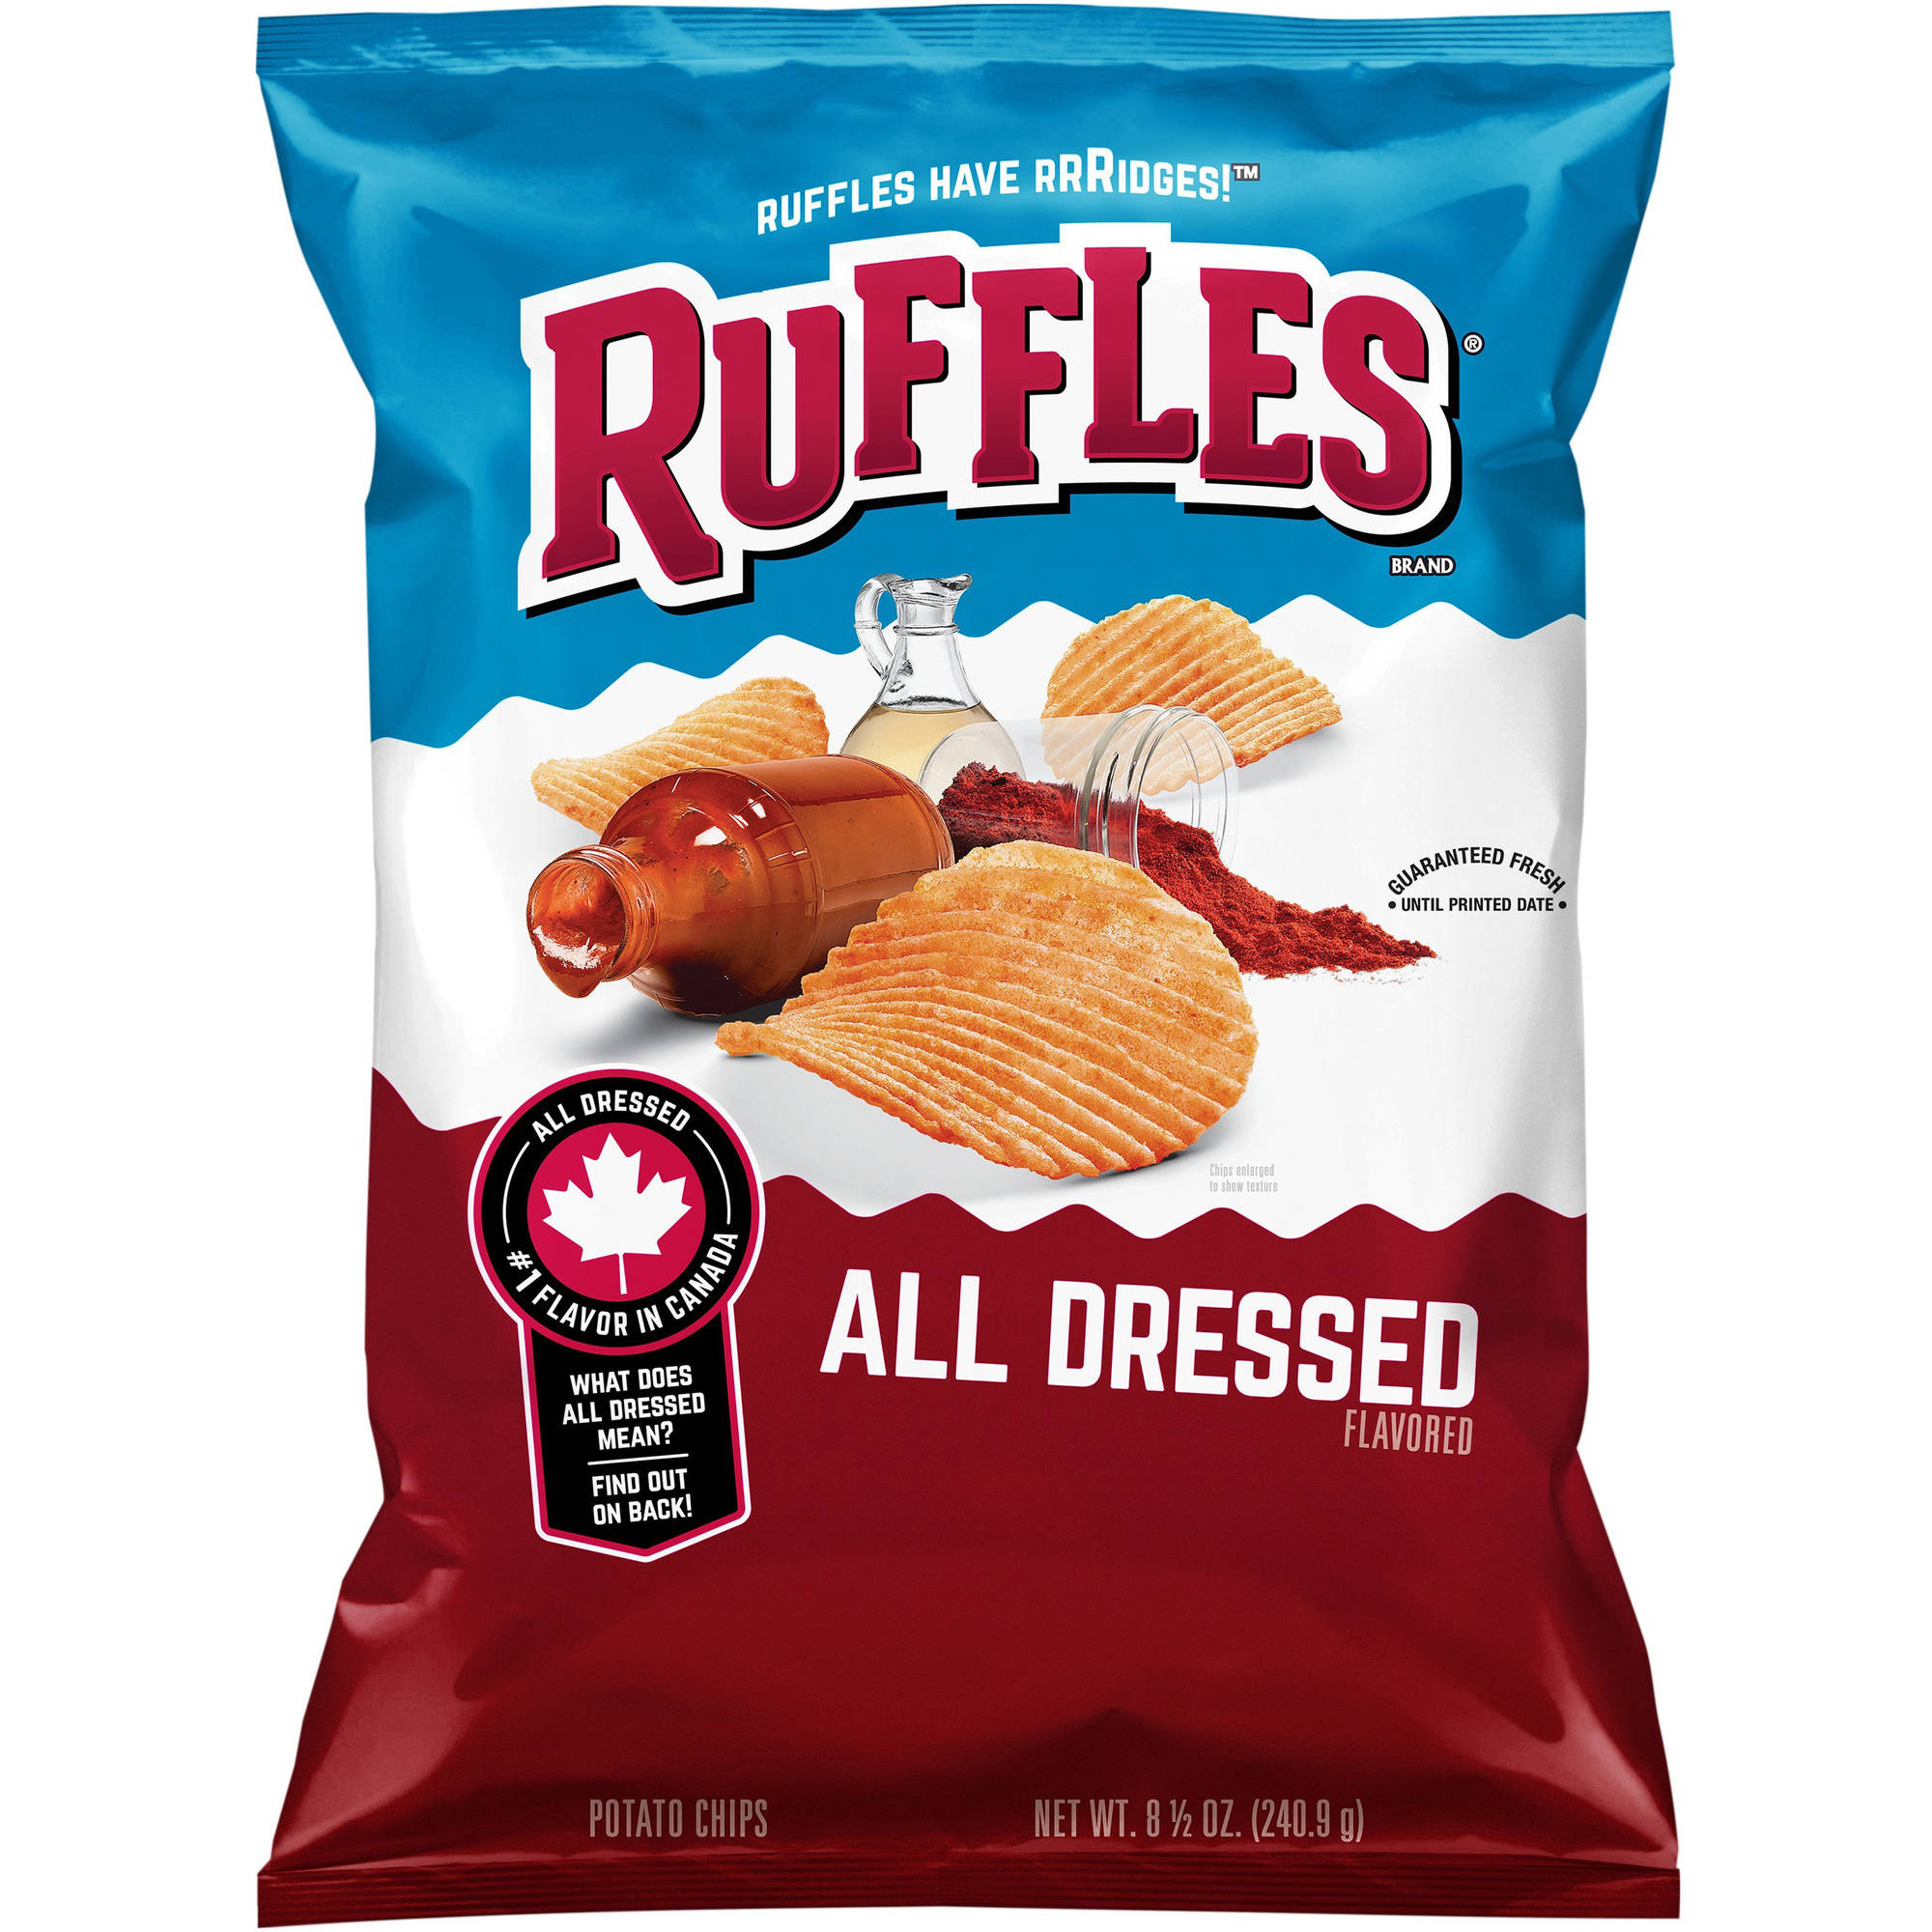 Ruffles All Dressed Potato Chips, 8.5 oz